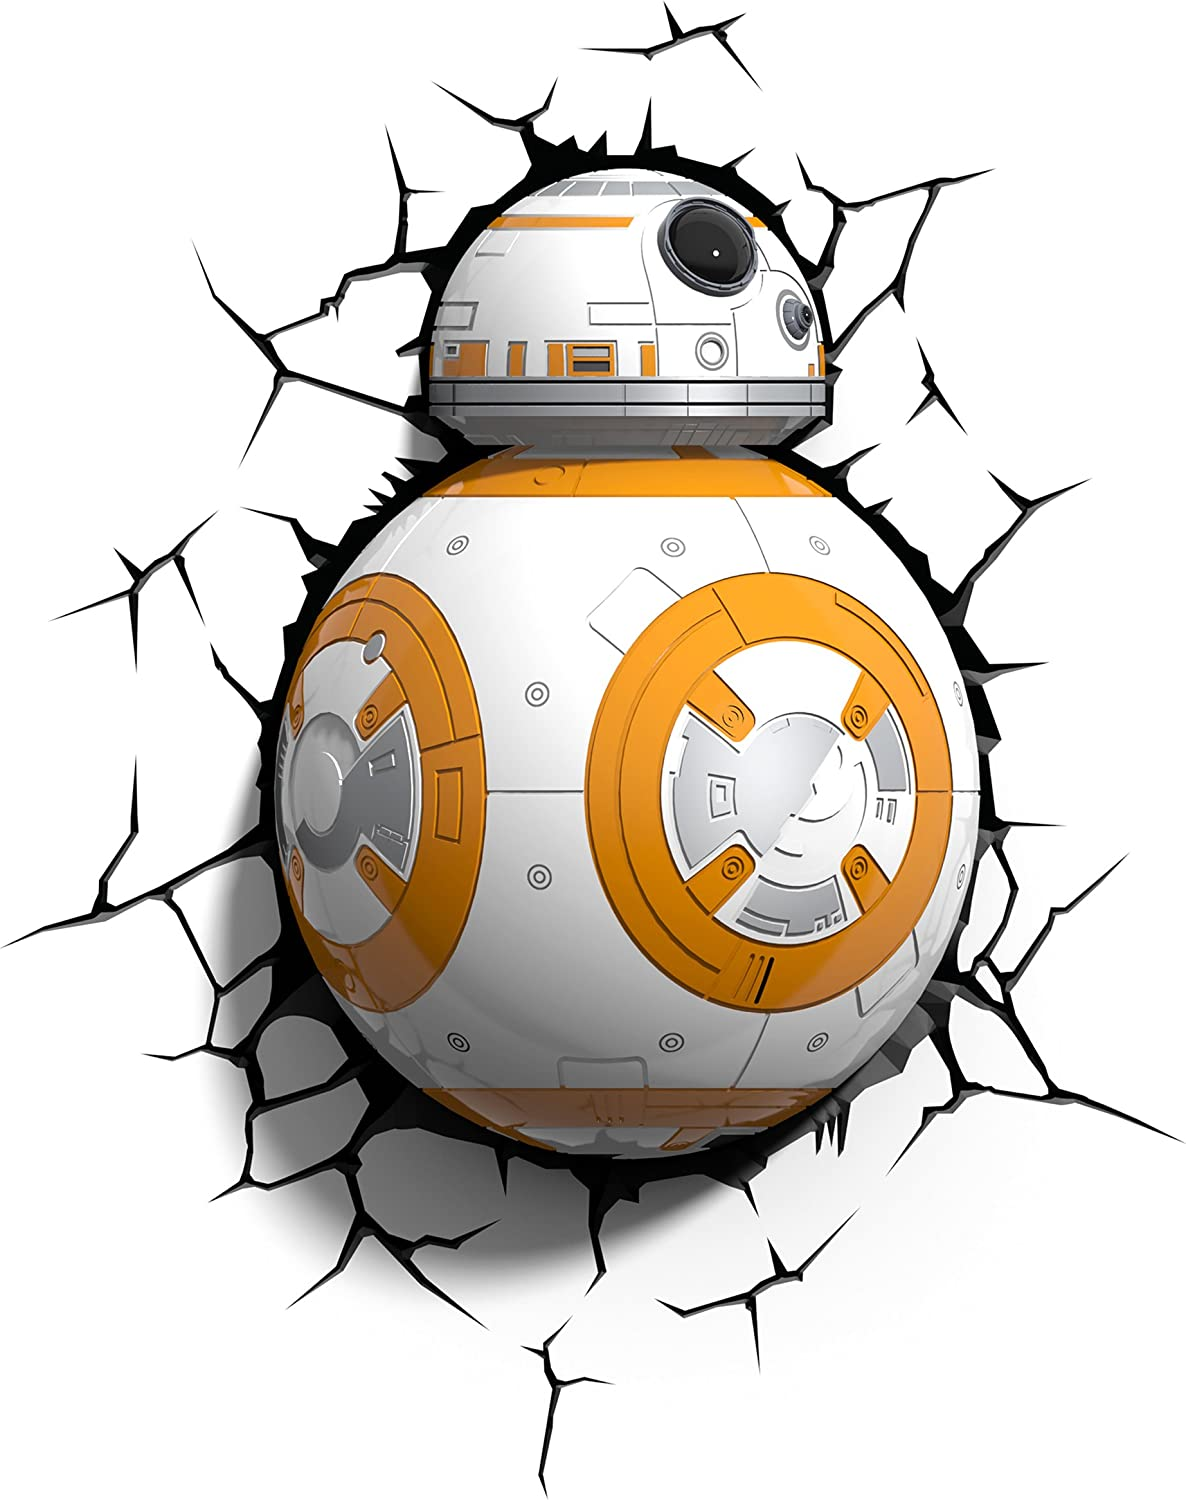 3DLightFX Star Wars BB-8 3D Deco Light